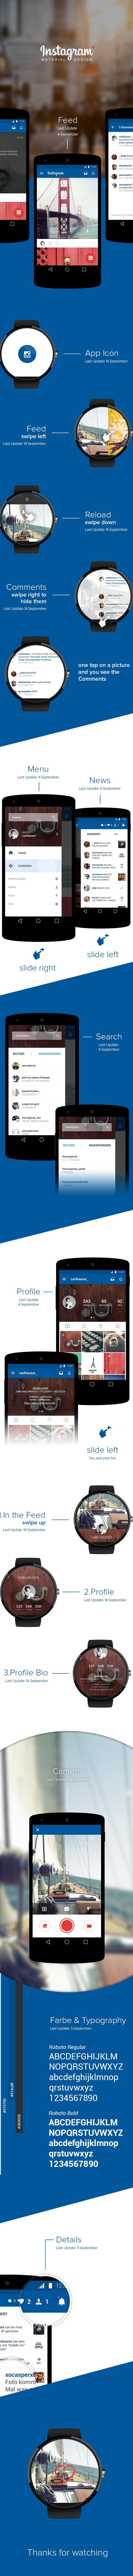 Instagram | Material Design on Behance